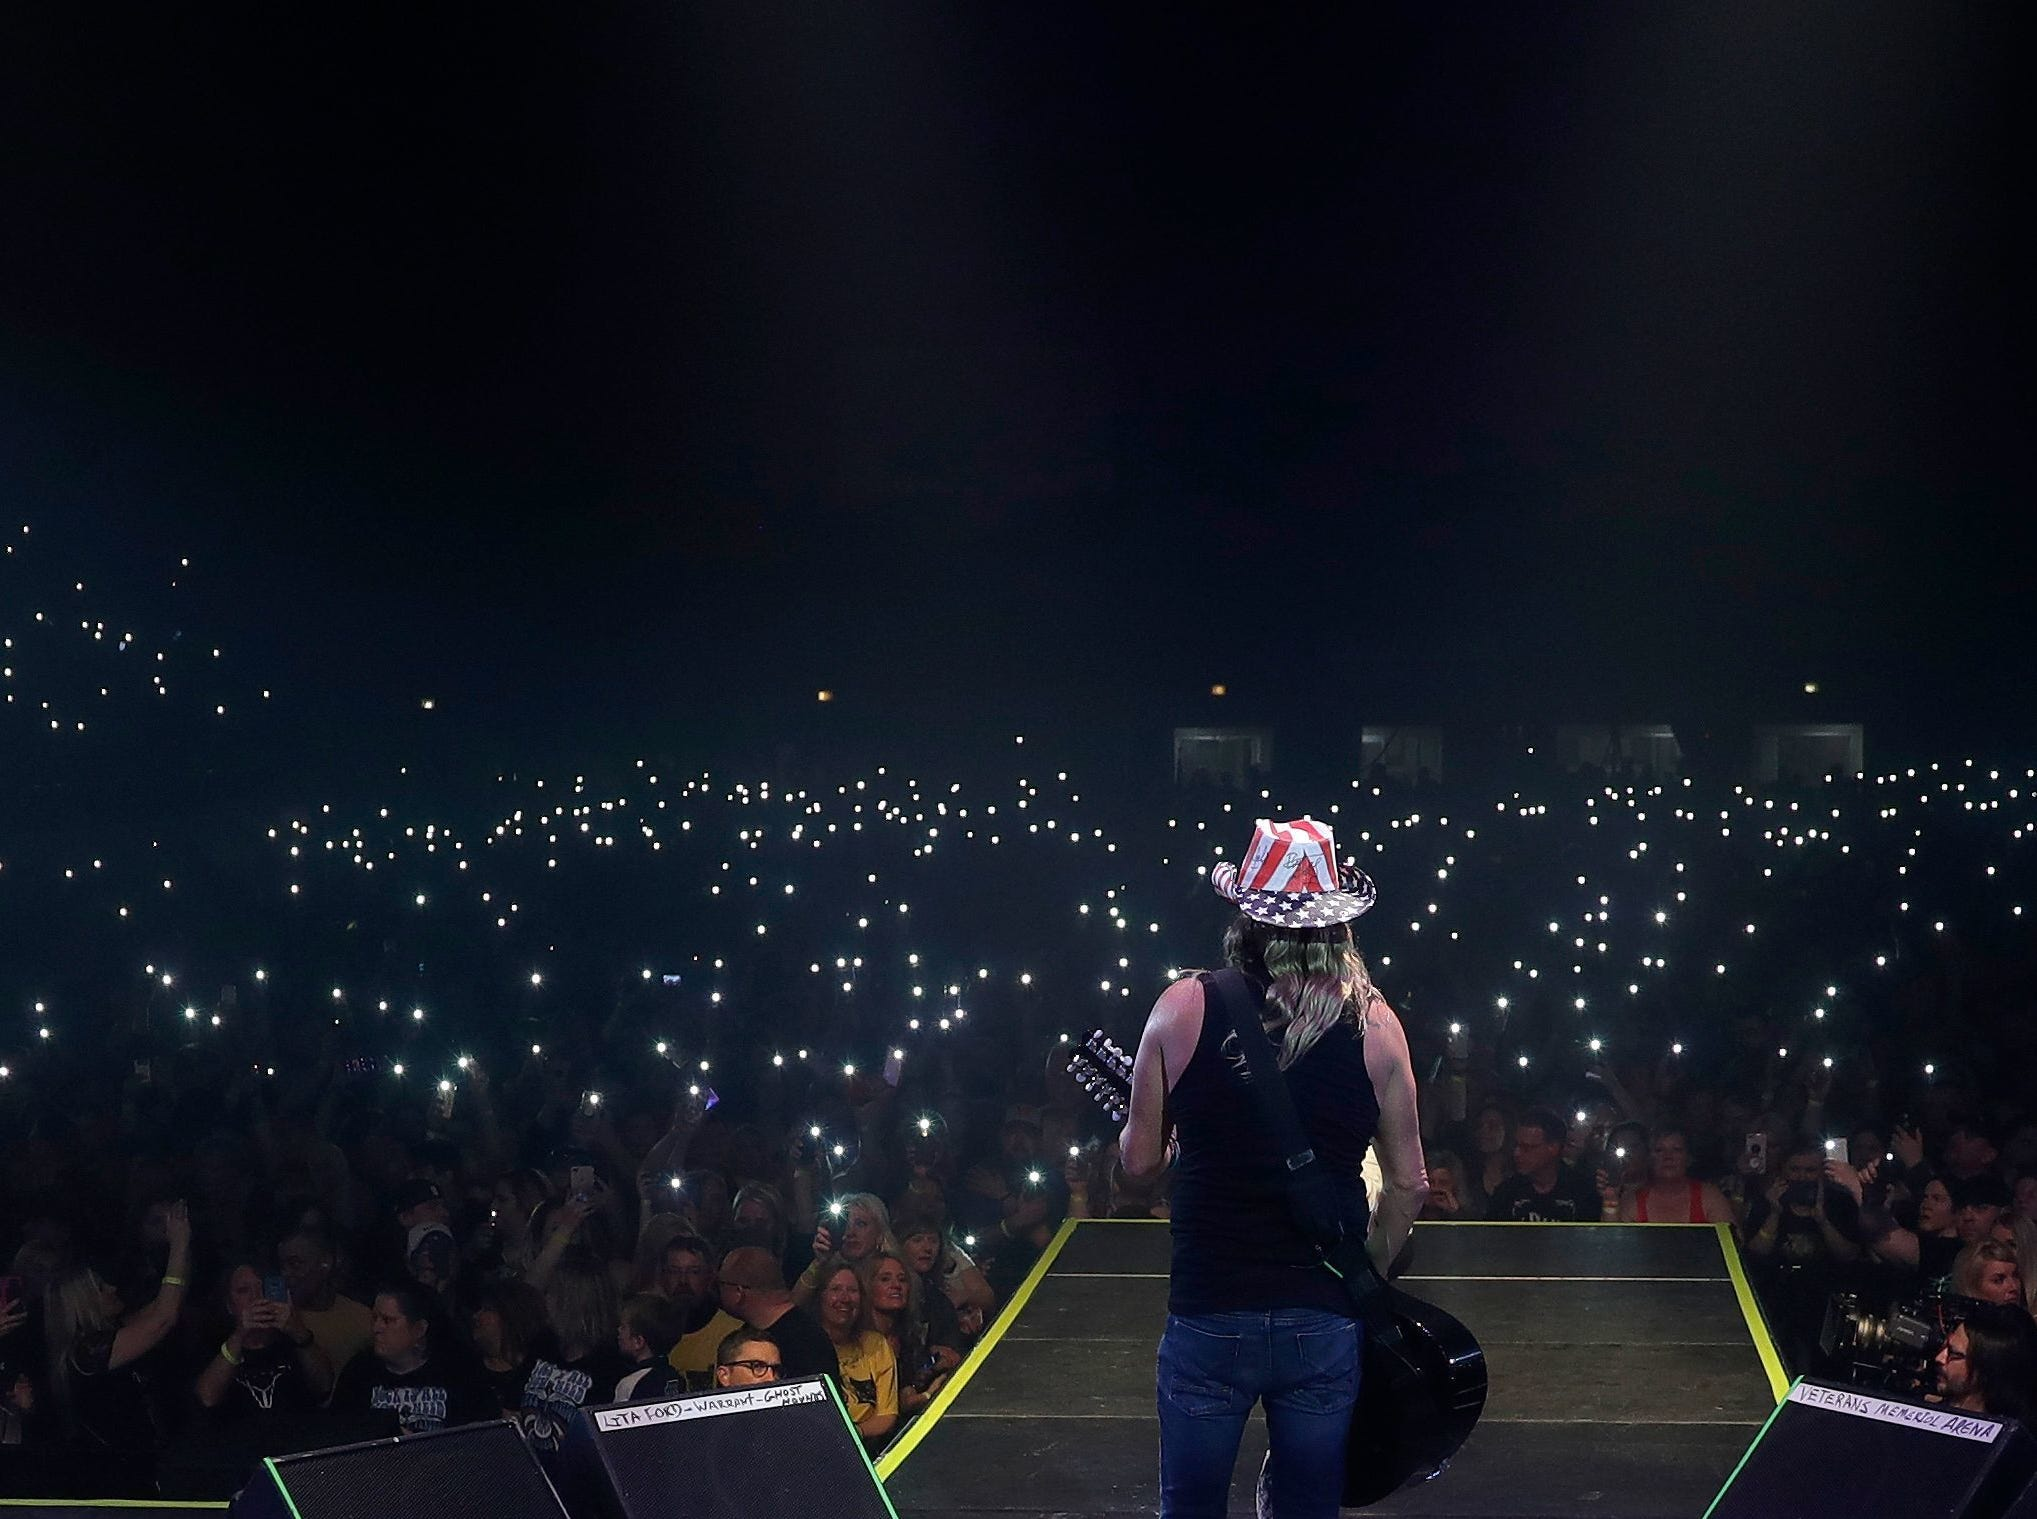 Cell phones shine in the audience of 5,600 who came to the last concert at Brown County Veterans Memorial Arena on April 6, 2019. Bret Michaels was the headliner.